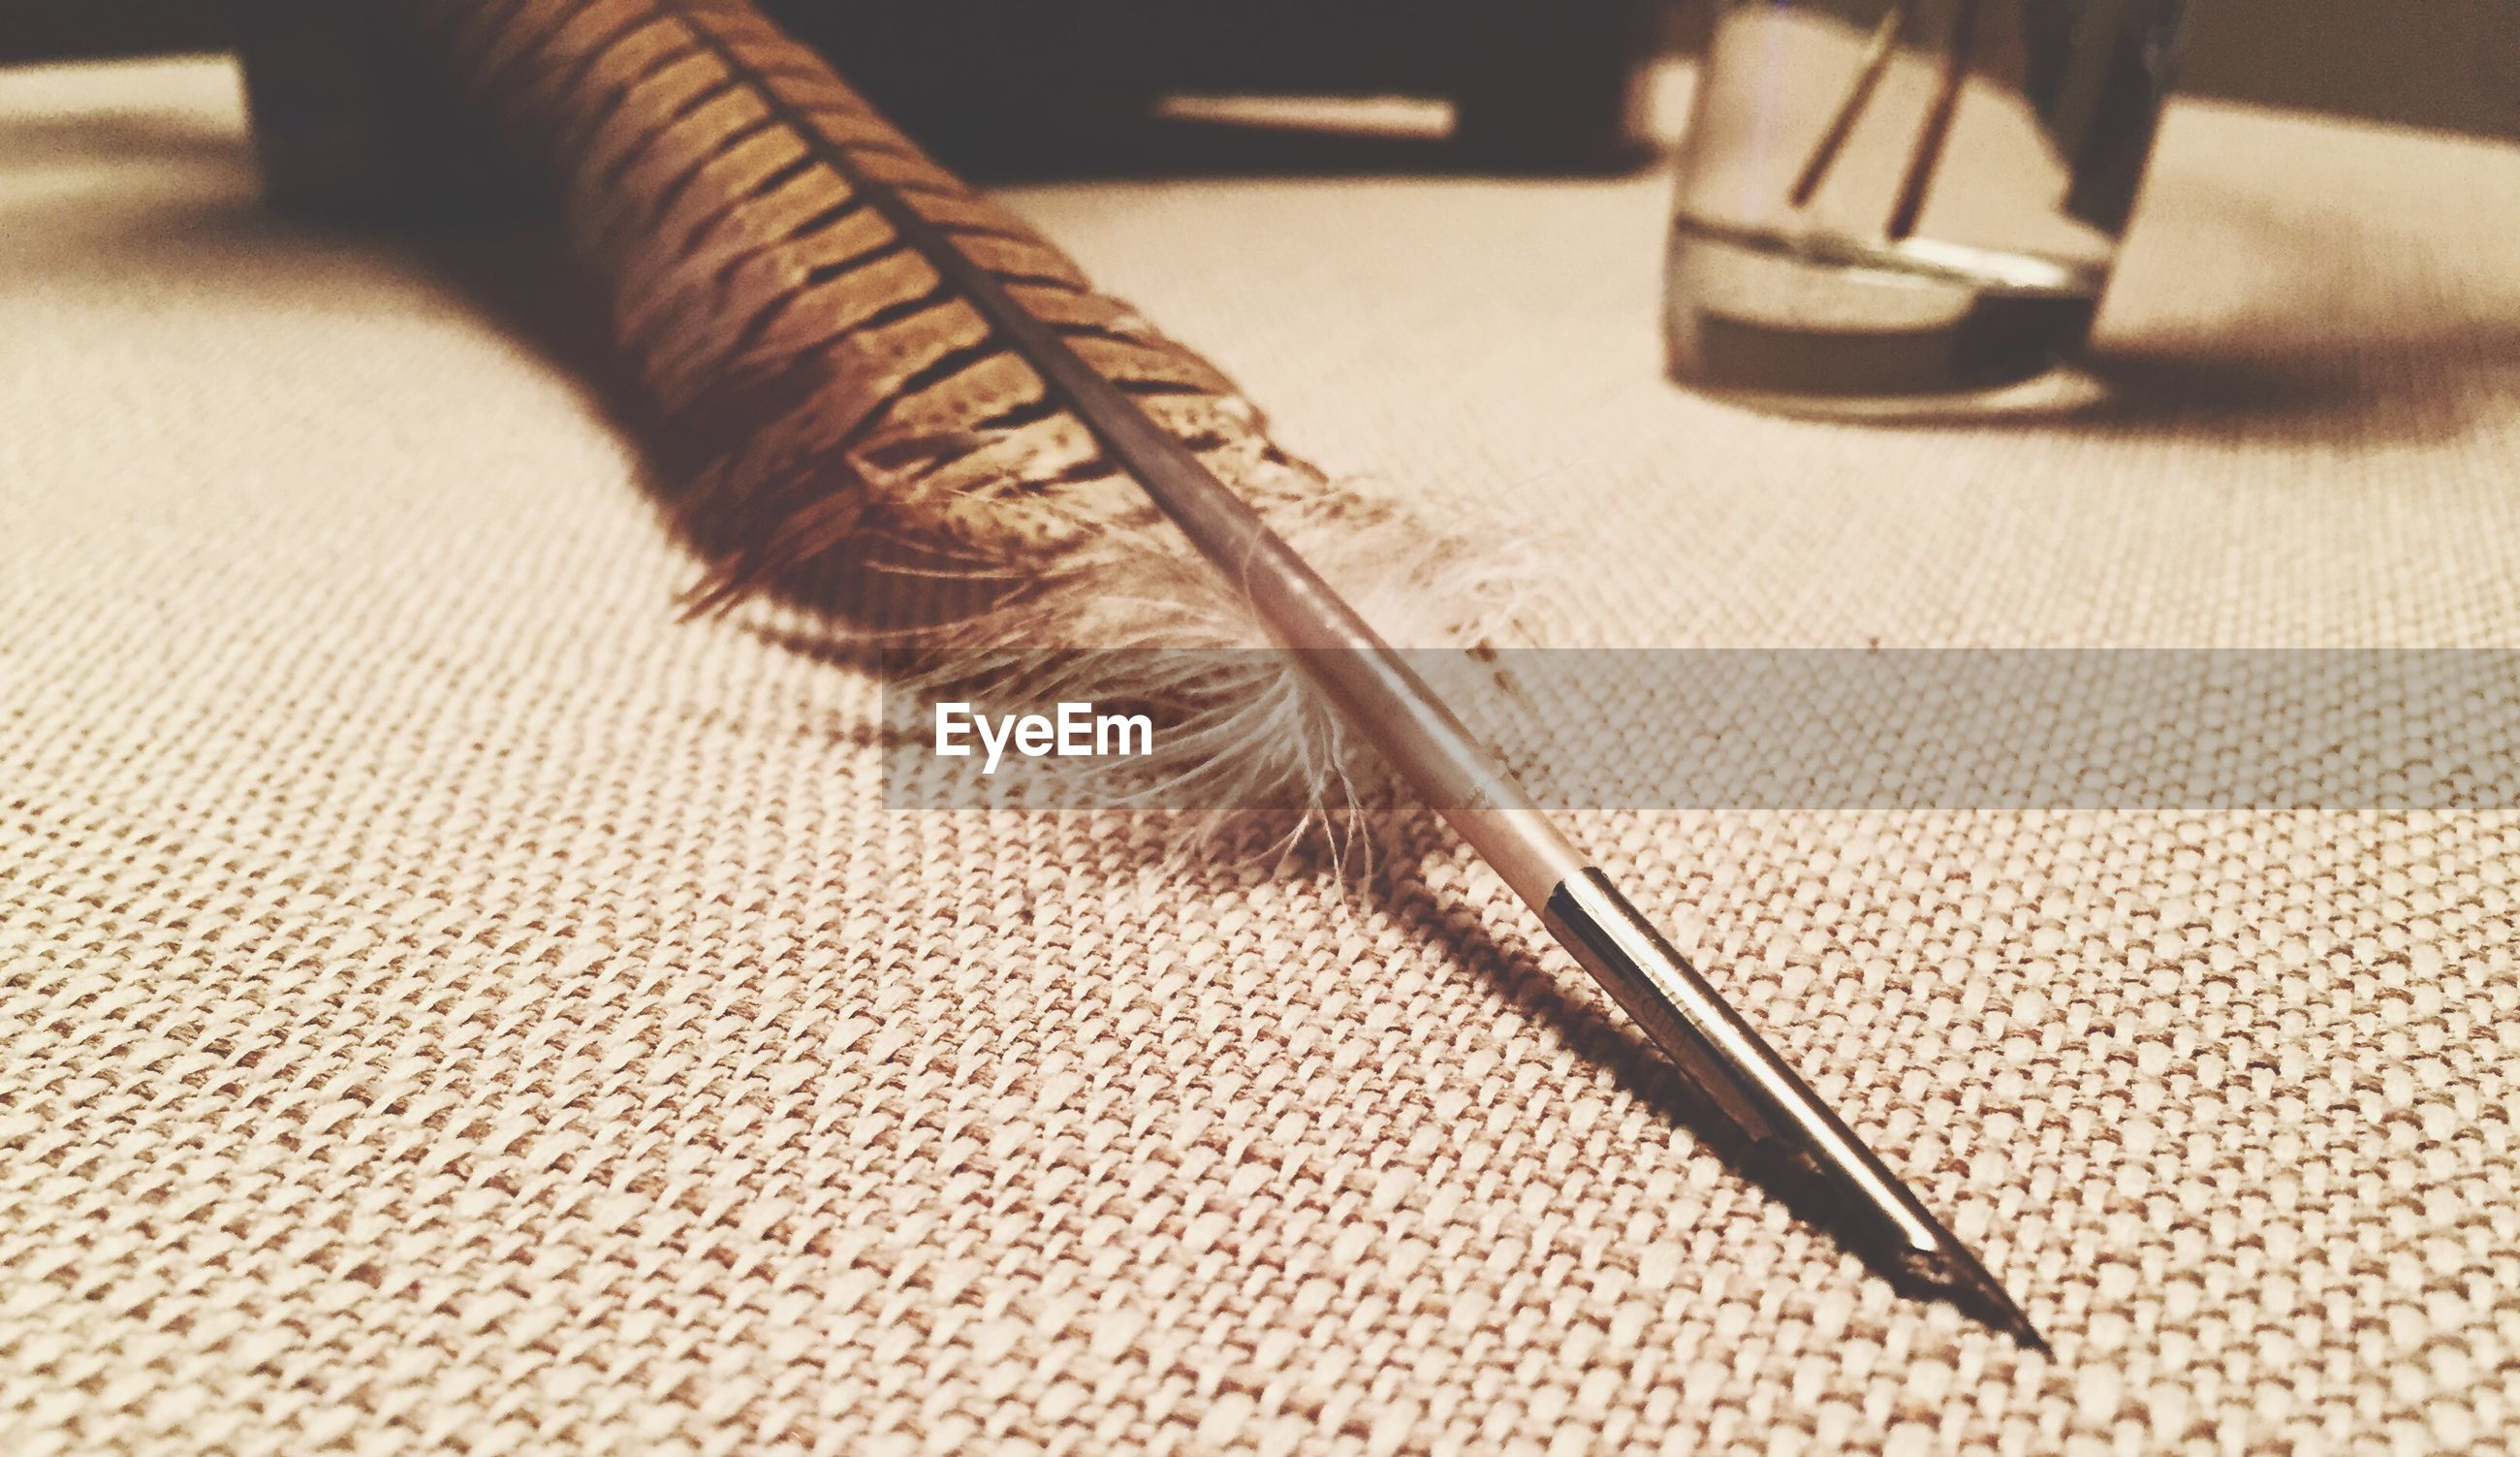 Close-up of quill pen on table